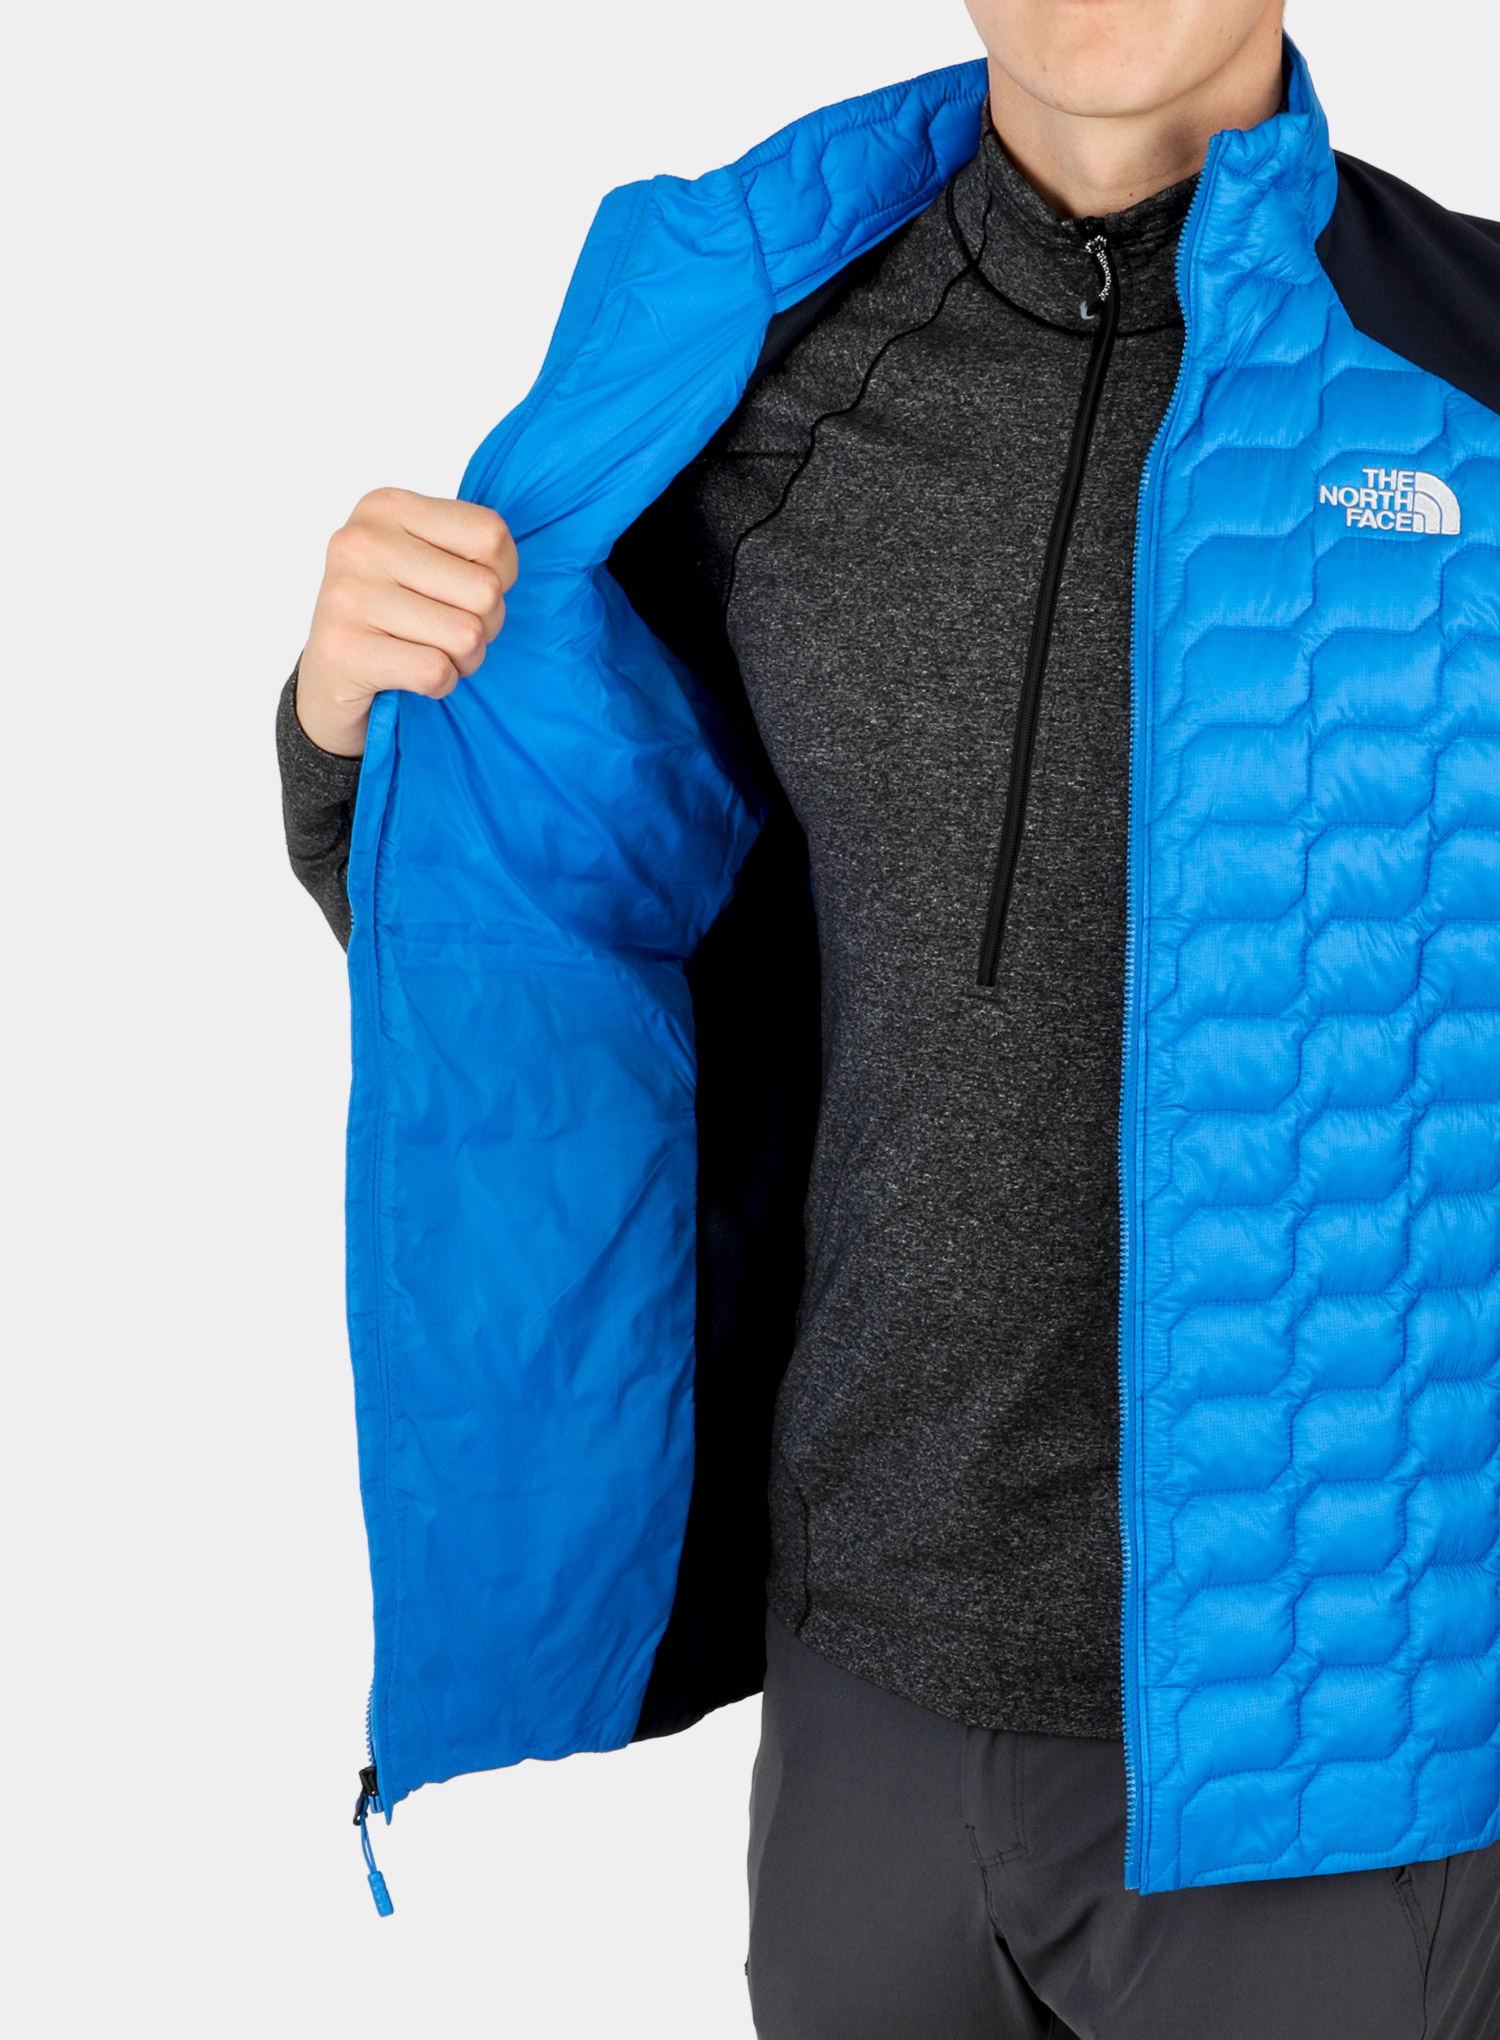 Kamizelka The North Face New Tansa Thermoball Vest - bomber blue/navy - zdjęcie nr. 10